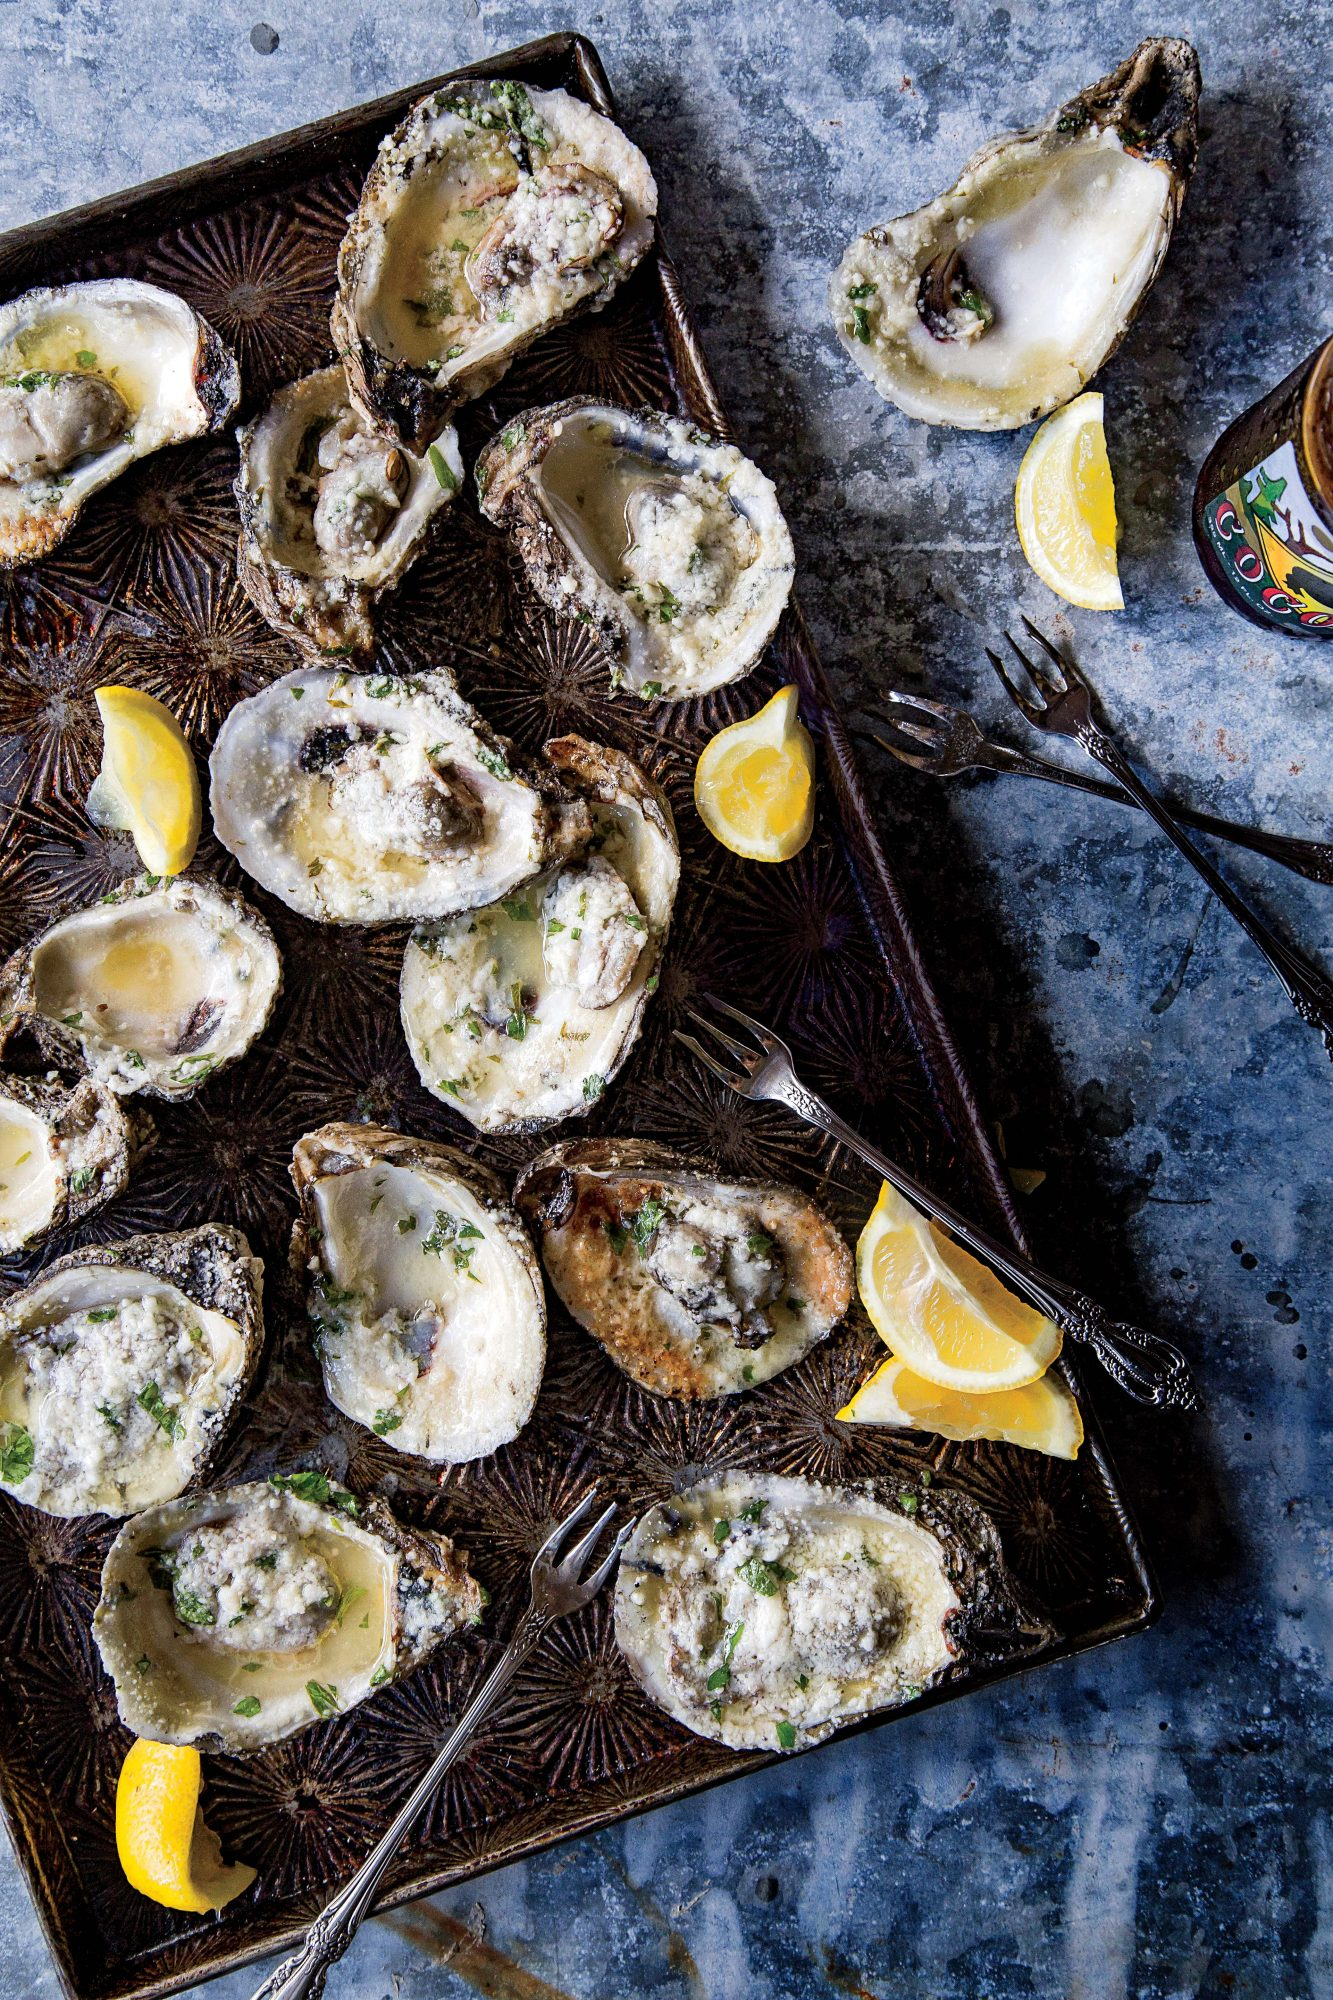 sl-Grilled Oysters with Lemon-Garlic Butter Image